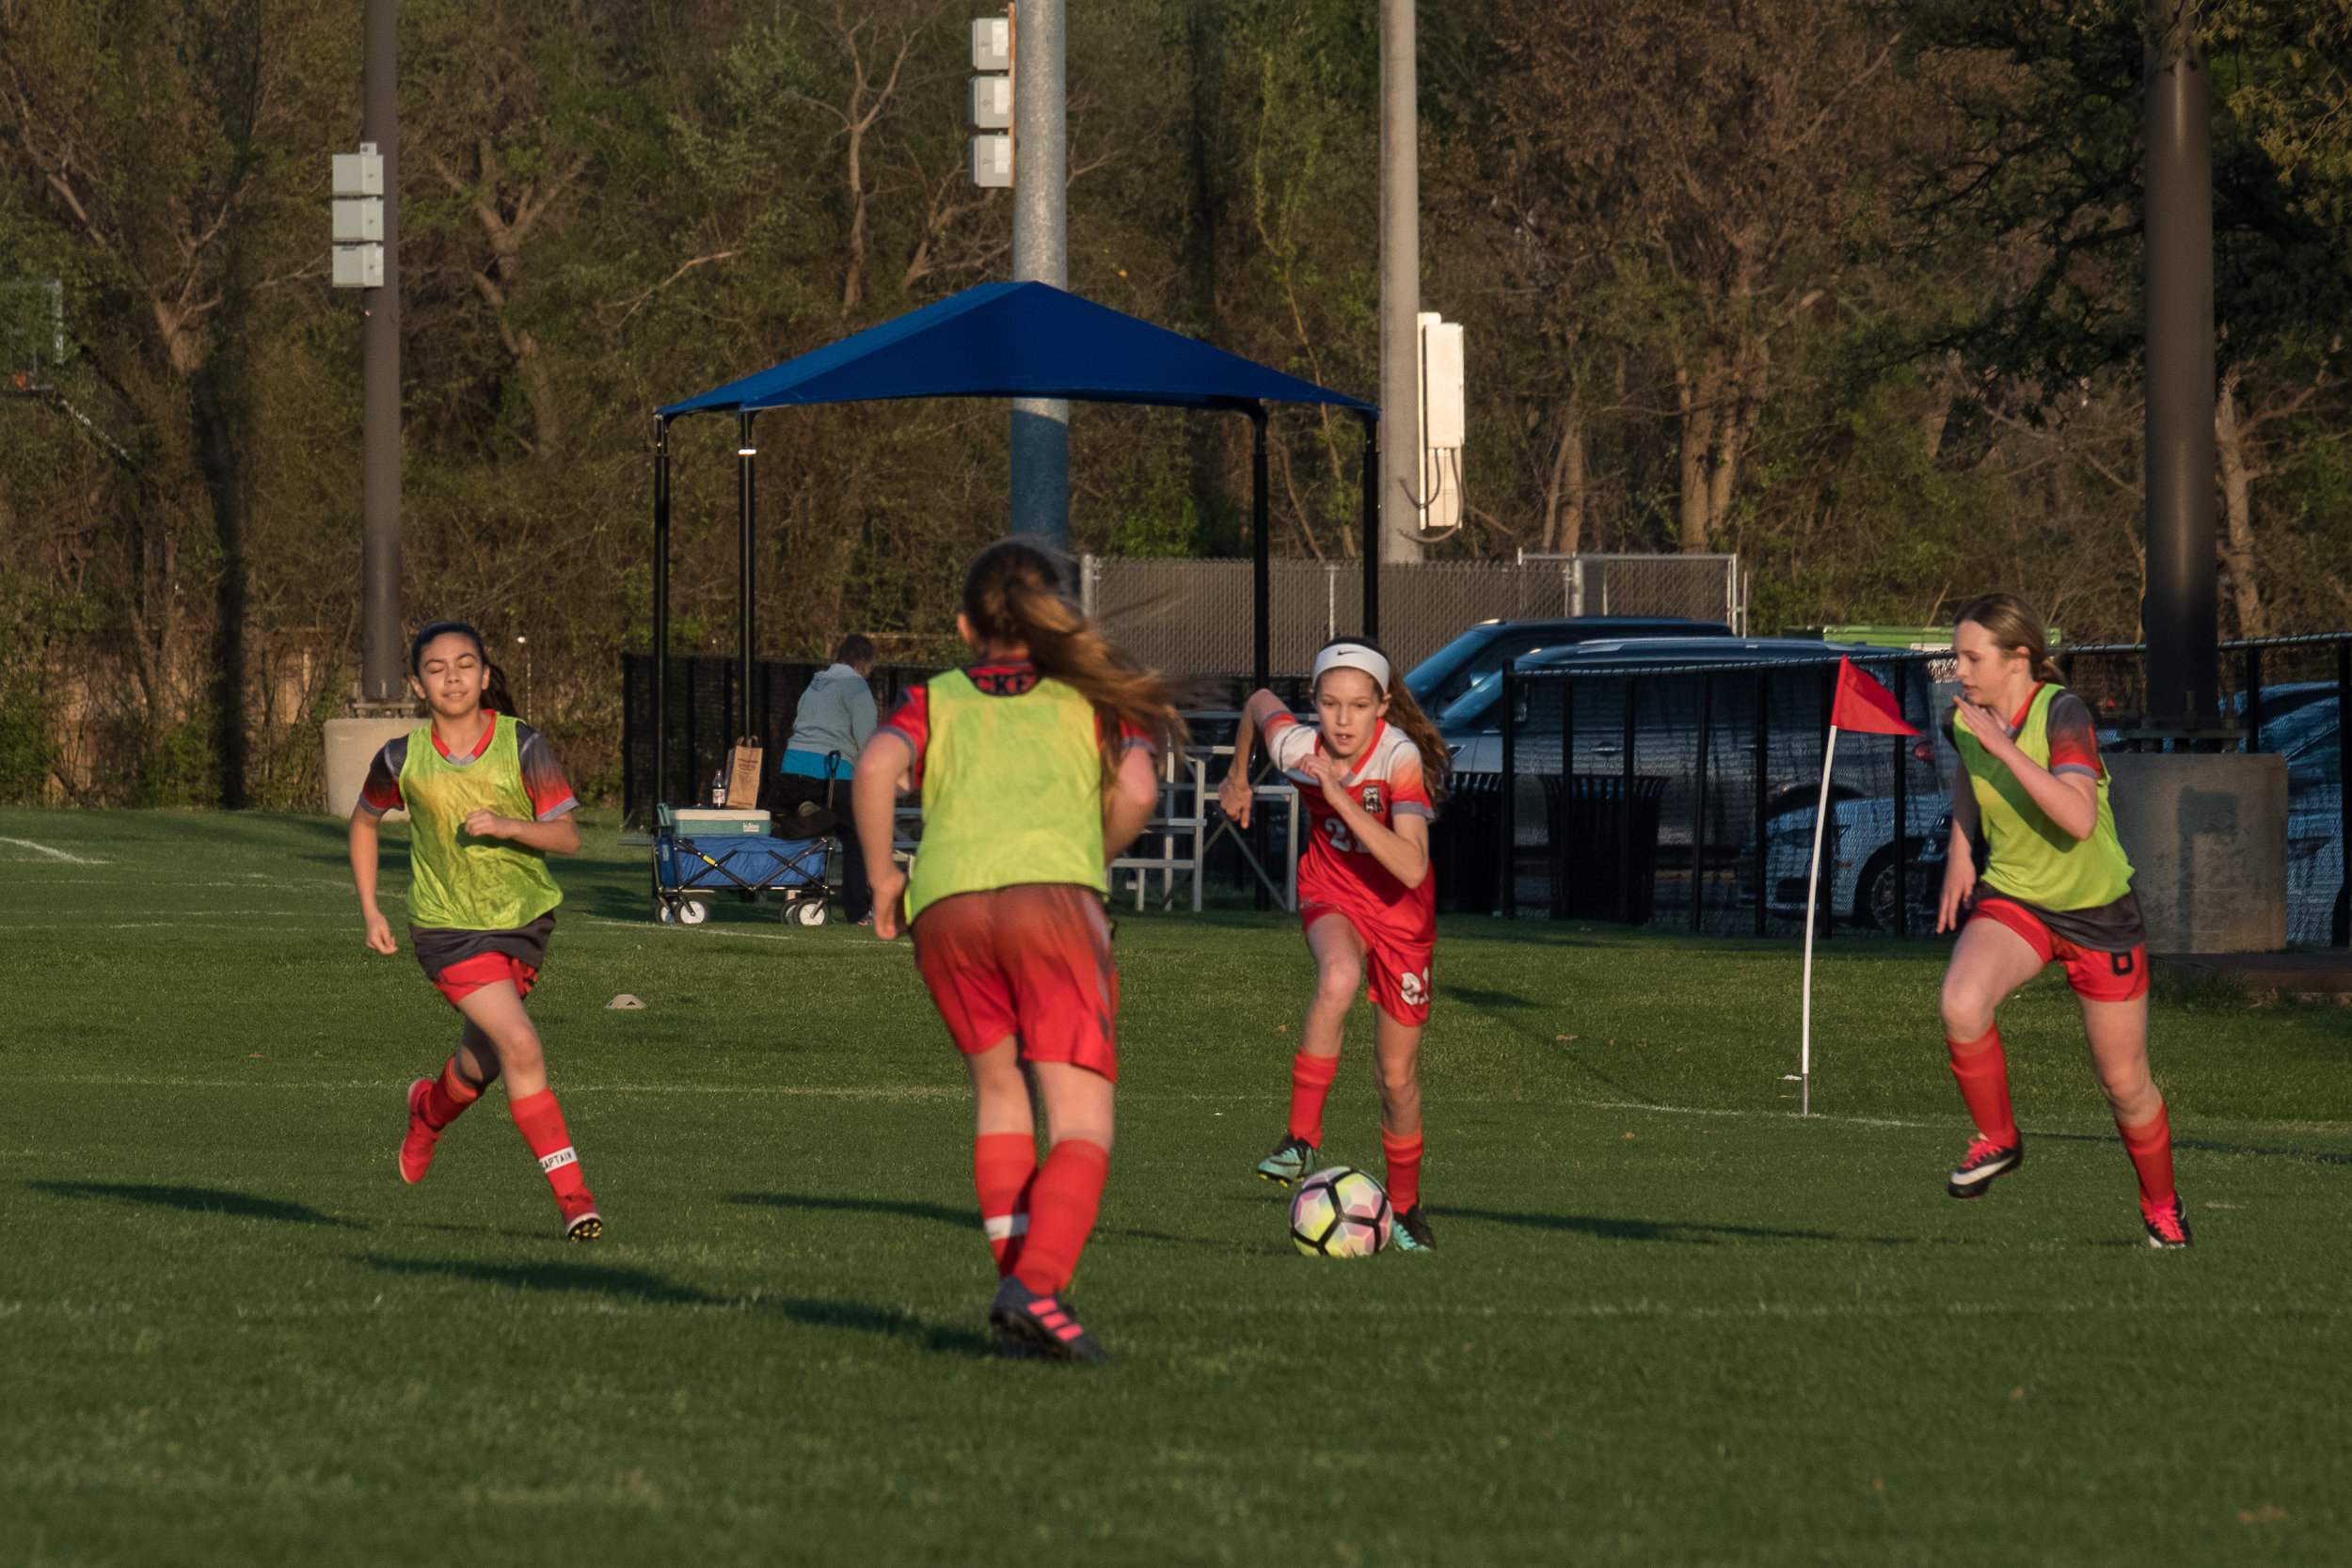 Outdoor soccer is also back in season. Go Hurricanes!